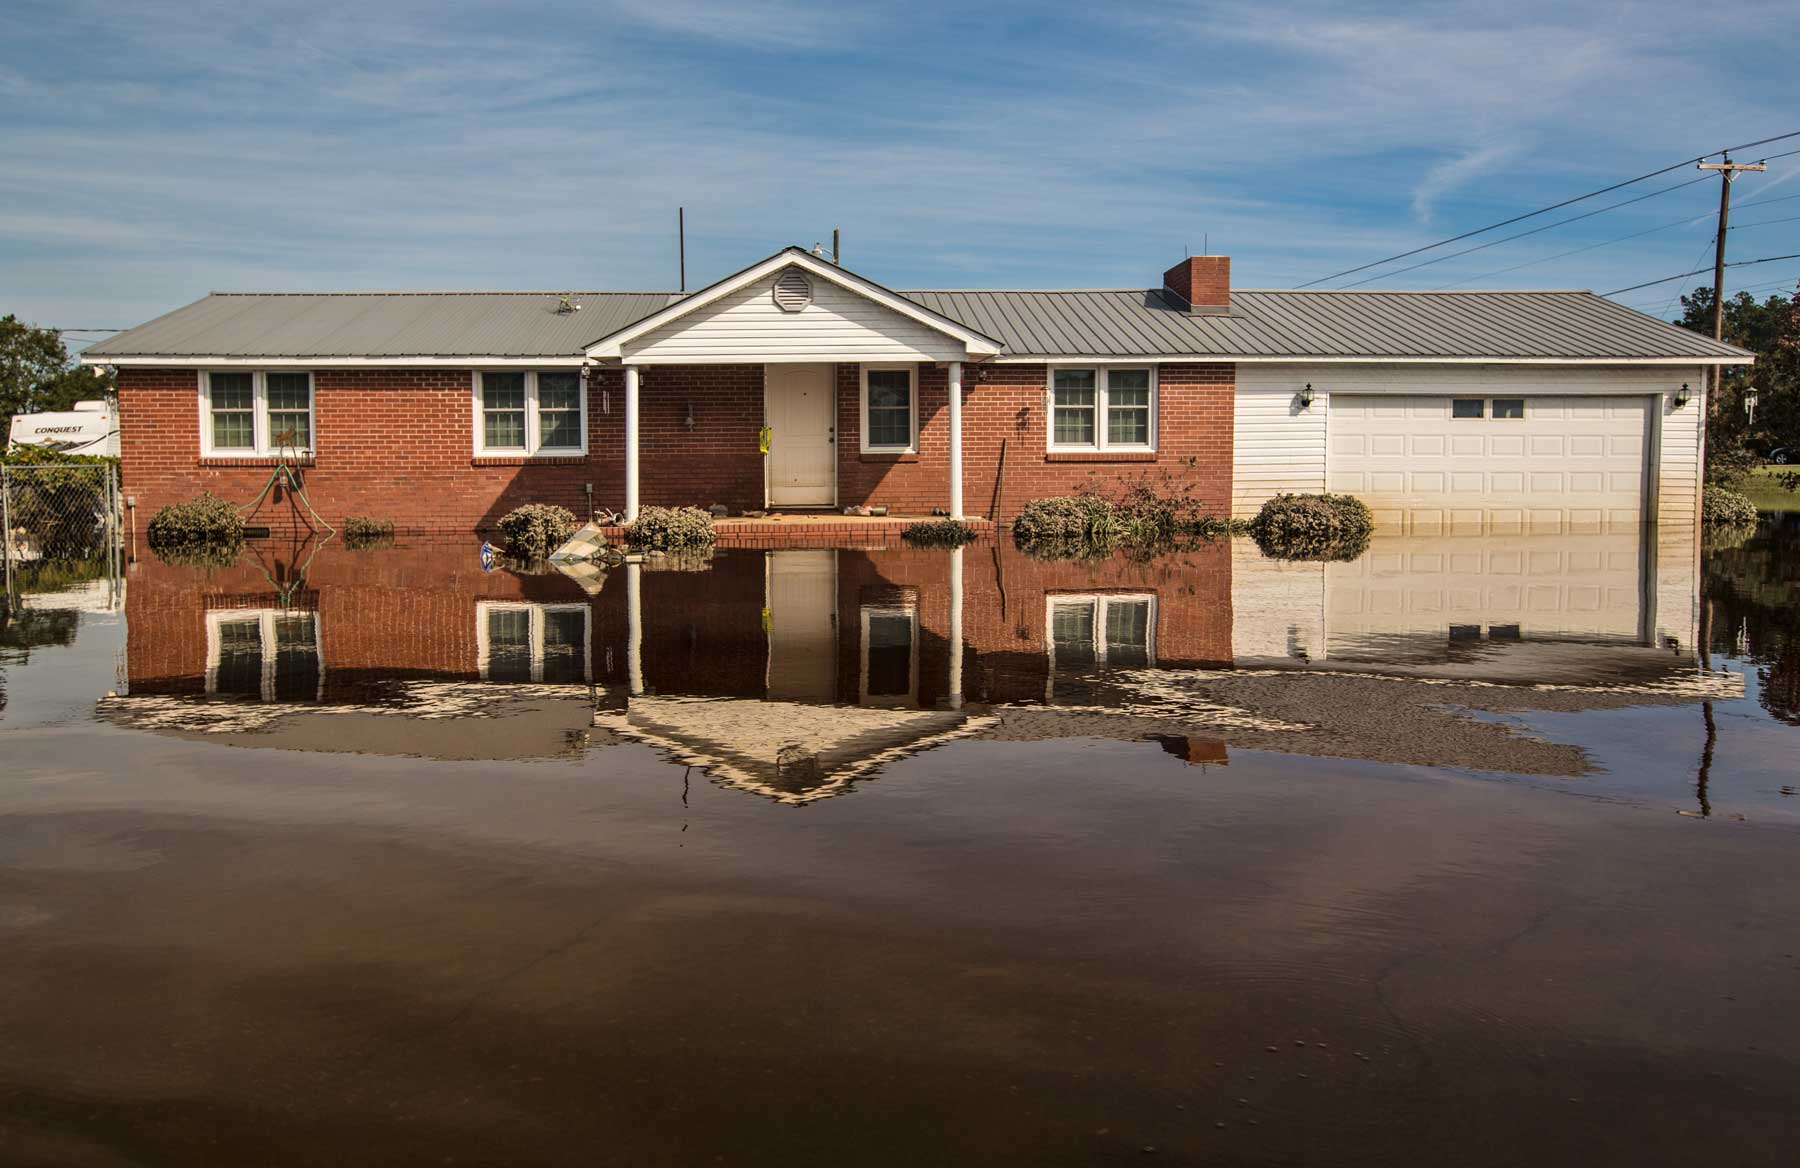 Floodwaters reflect a home in Lumberton, N.C. (Julie Dermanksy)